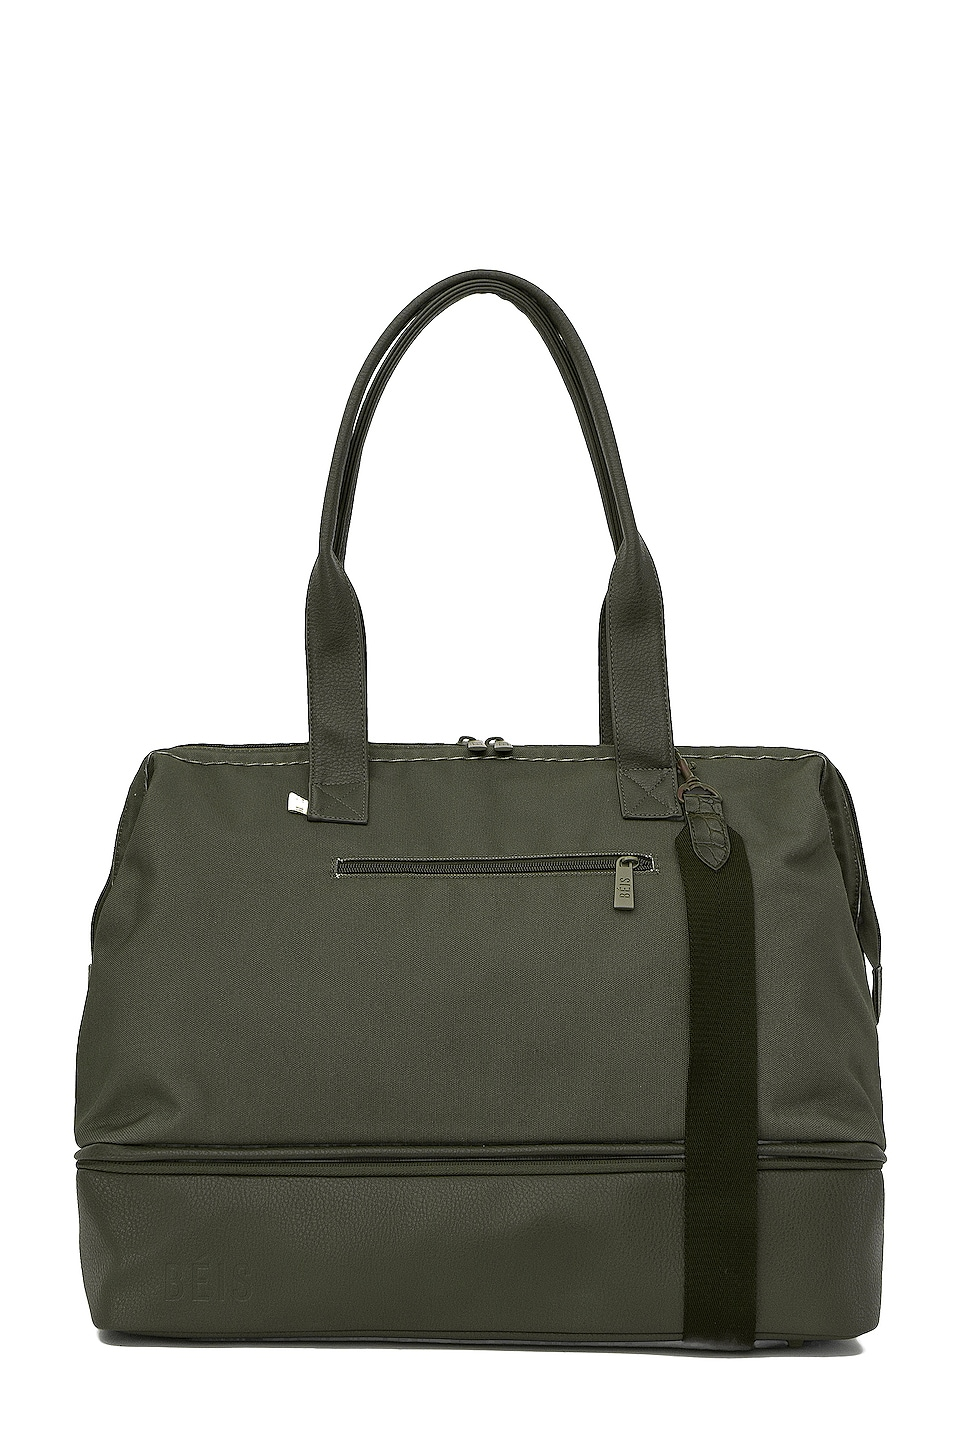 BEIS Weekend Bag in Green